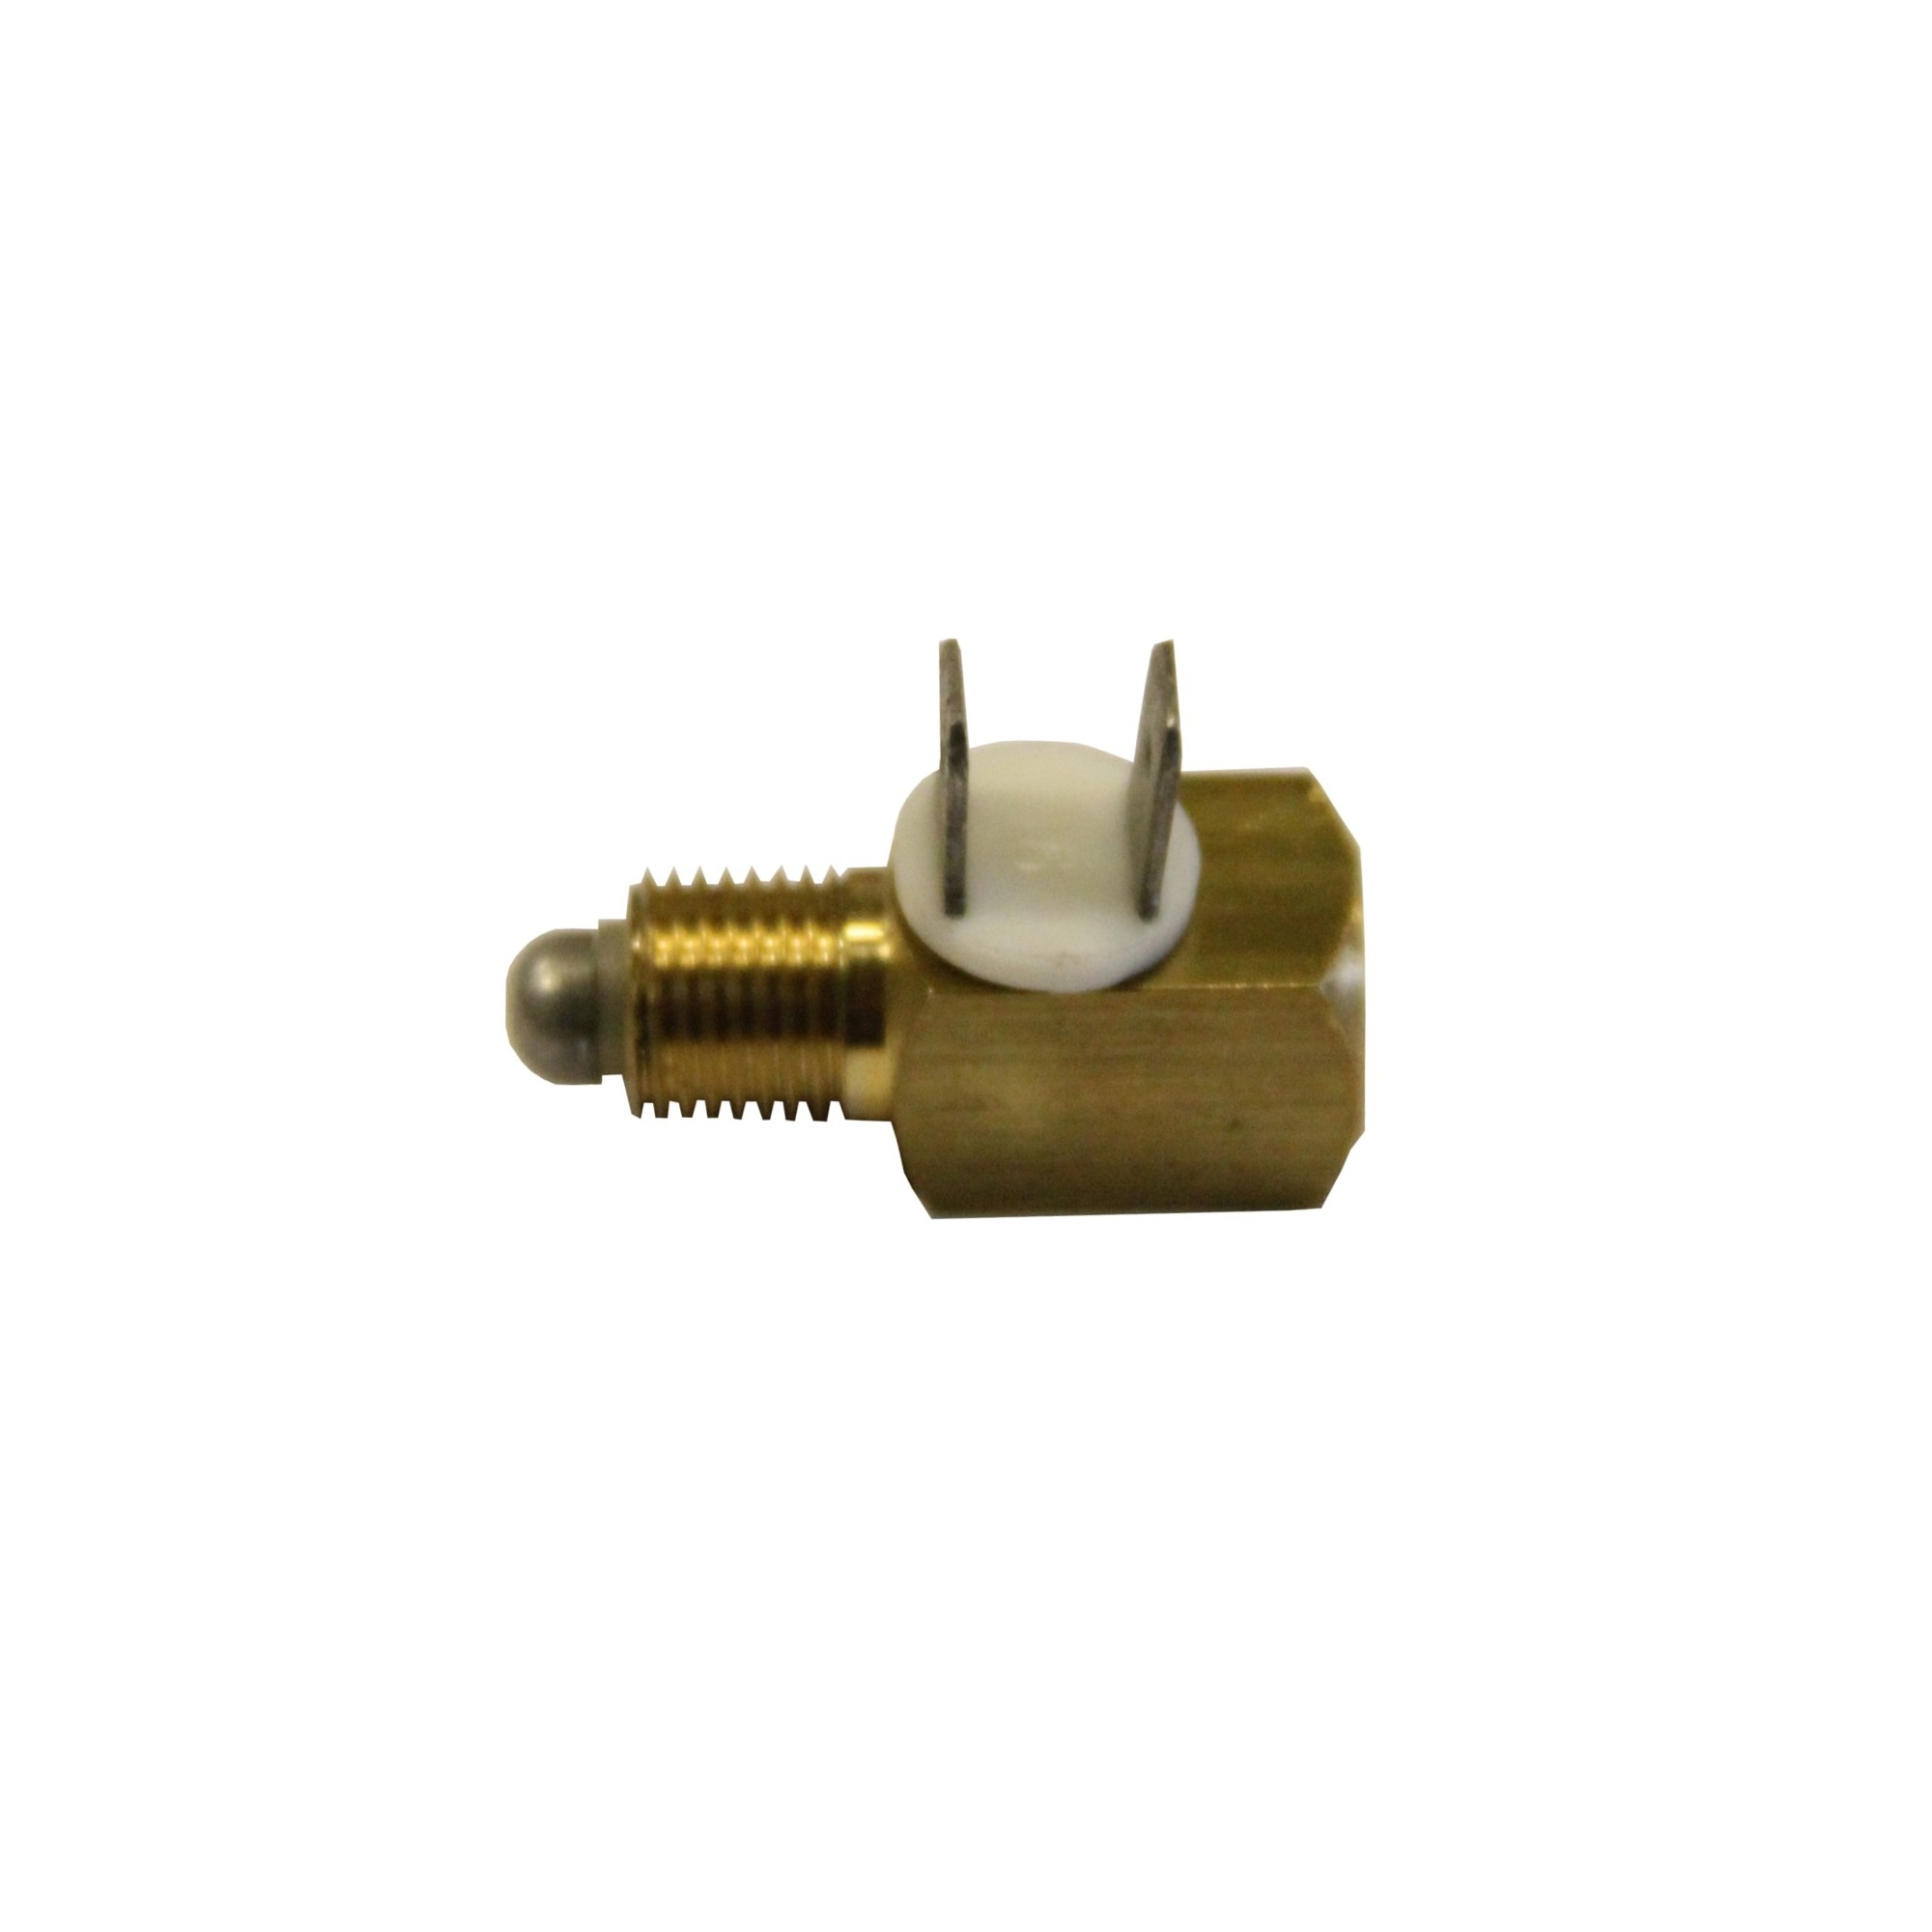 THERMAL REFLUX SAFETY CONNECTOR M10